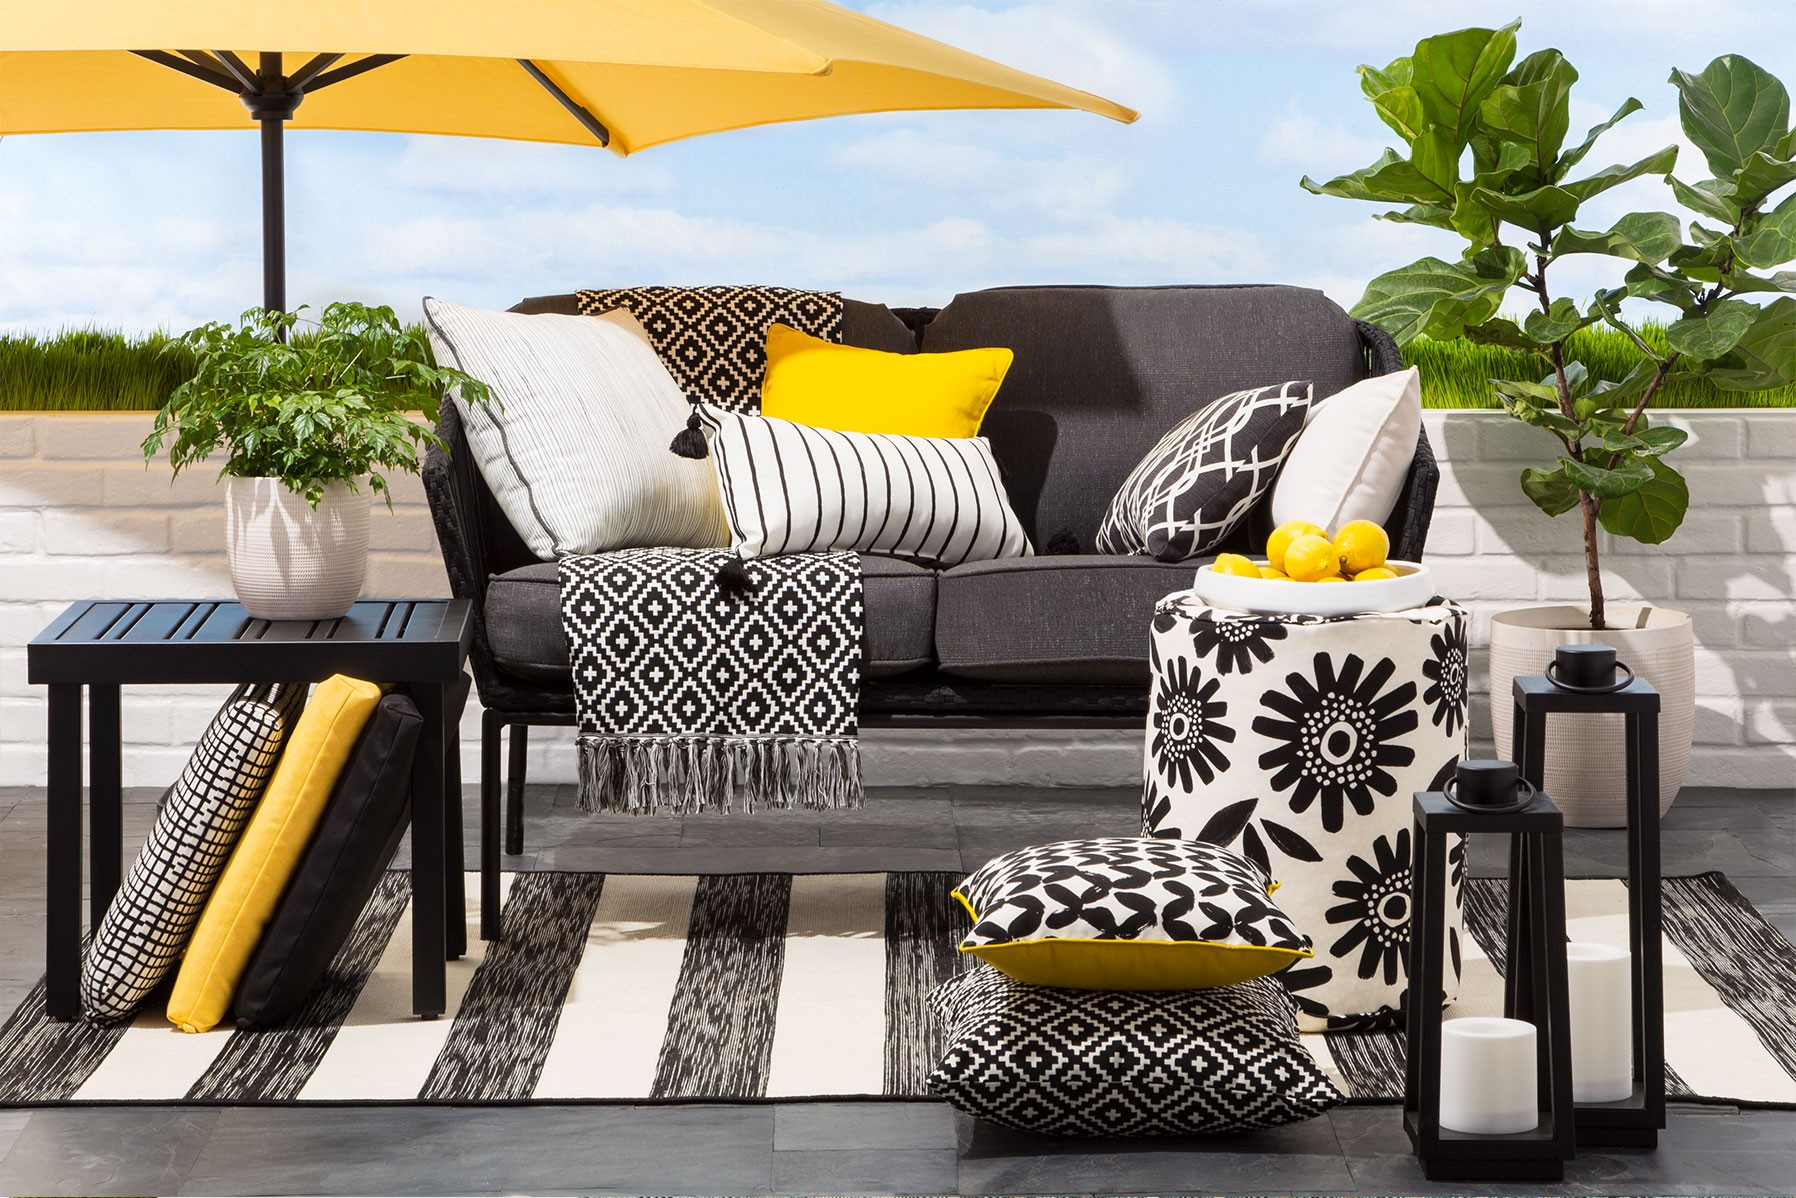 Outdoor Decor  Target. A+ Redemption Patio Furniture Rehab. Martha Stewart Living Patio Furniture Parts. Ace Hardware Patio Furniture Covers. Porch Swing Company Discount Code. Porch Swing Frame Diy. Outdoor Furniture Milwaukee Wisconsin. Outdoor Furniture Repair Ottawa. Discount Outdoor Patio Furniture San Diego